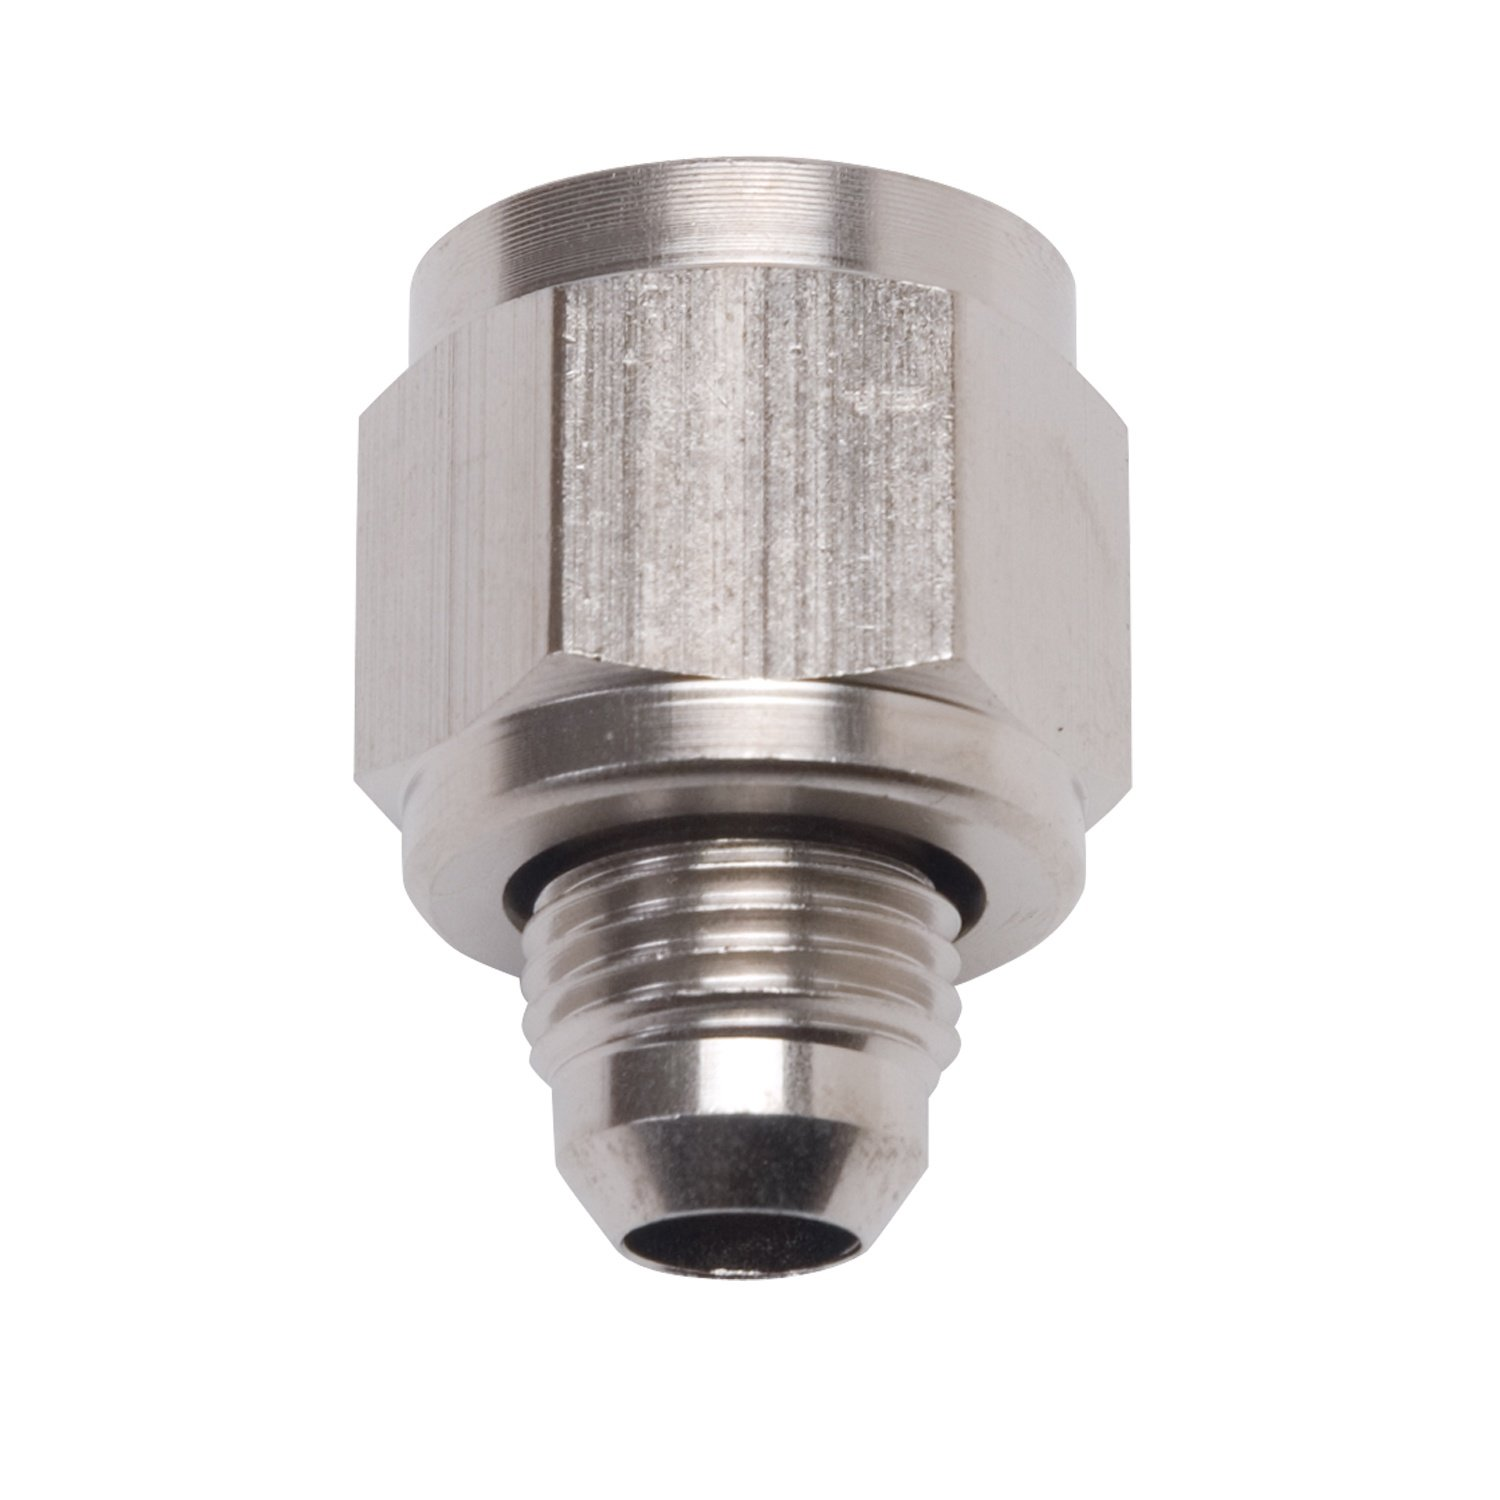 Russell RUS-660031 REDUCER FITTING